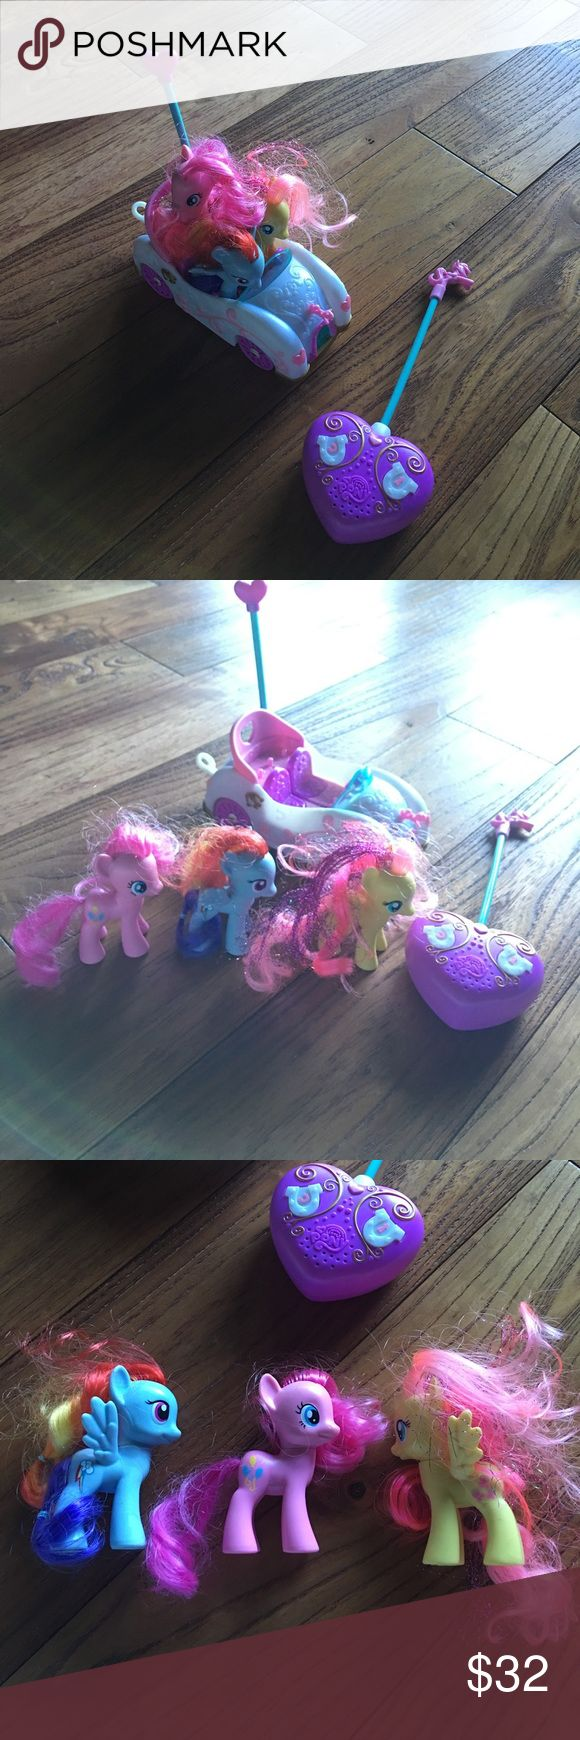 My little Pony car & 3 ponies Battery operated my little pony car. The car batteries but the remote's still has batteries. Also comes with the 3 small my little Ponies as shown. Such a fun car! My Little Pony Accessories